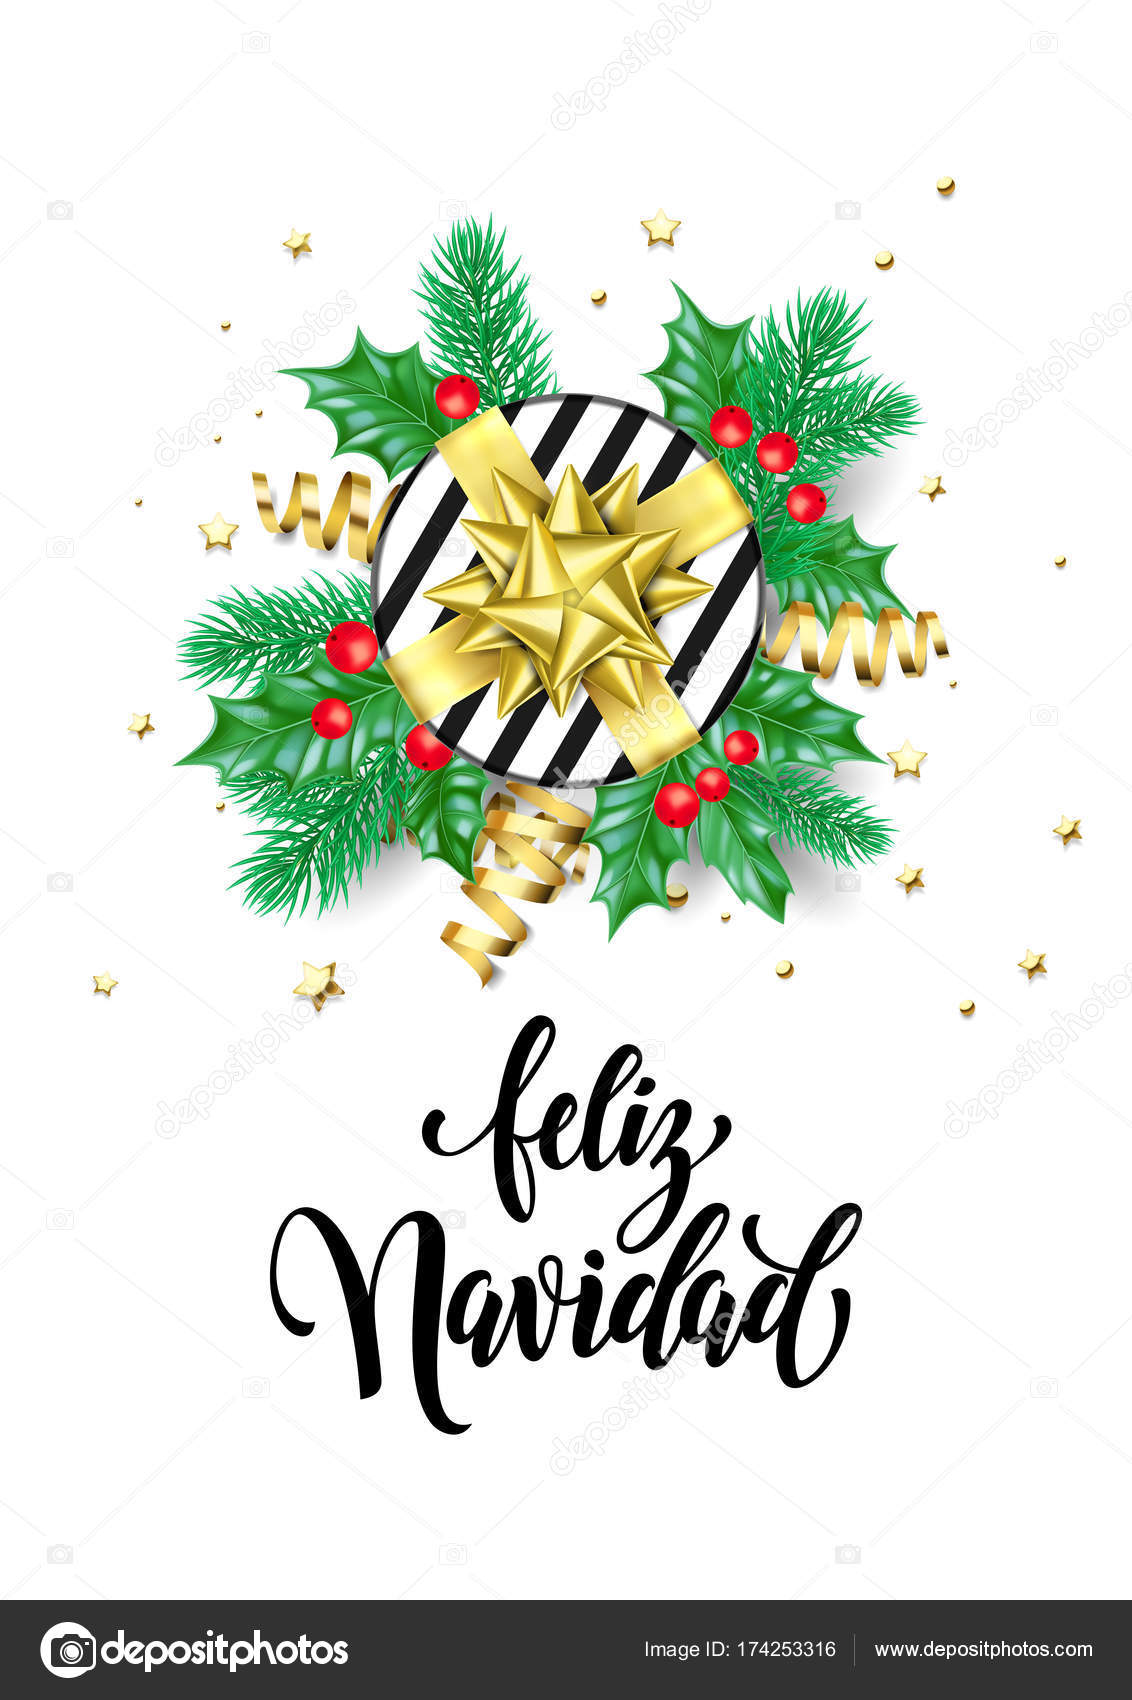 Christmas In Spanish.Merry Christmas Spanish Feliz Navidad Trendy Quote